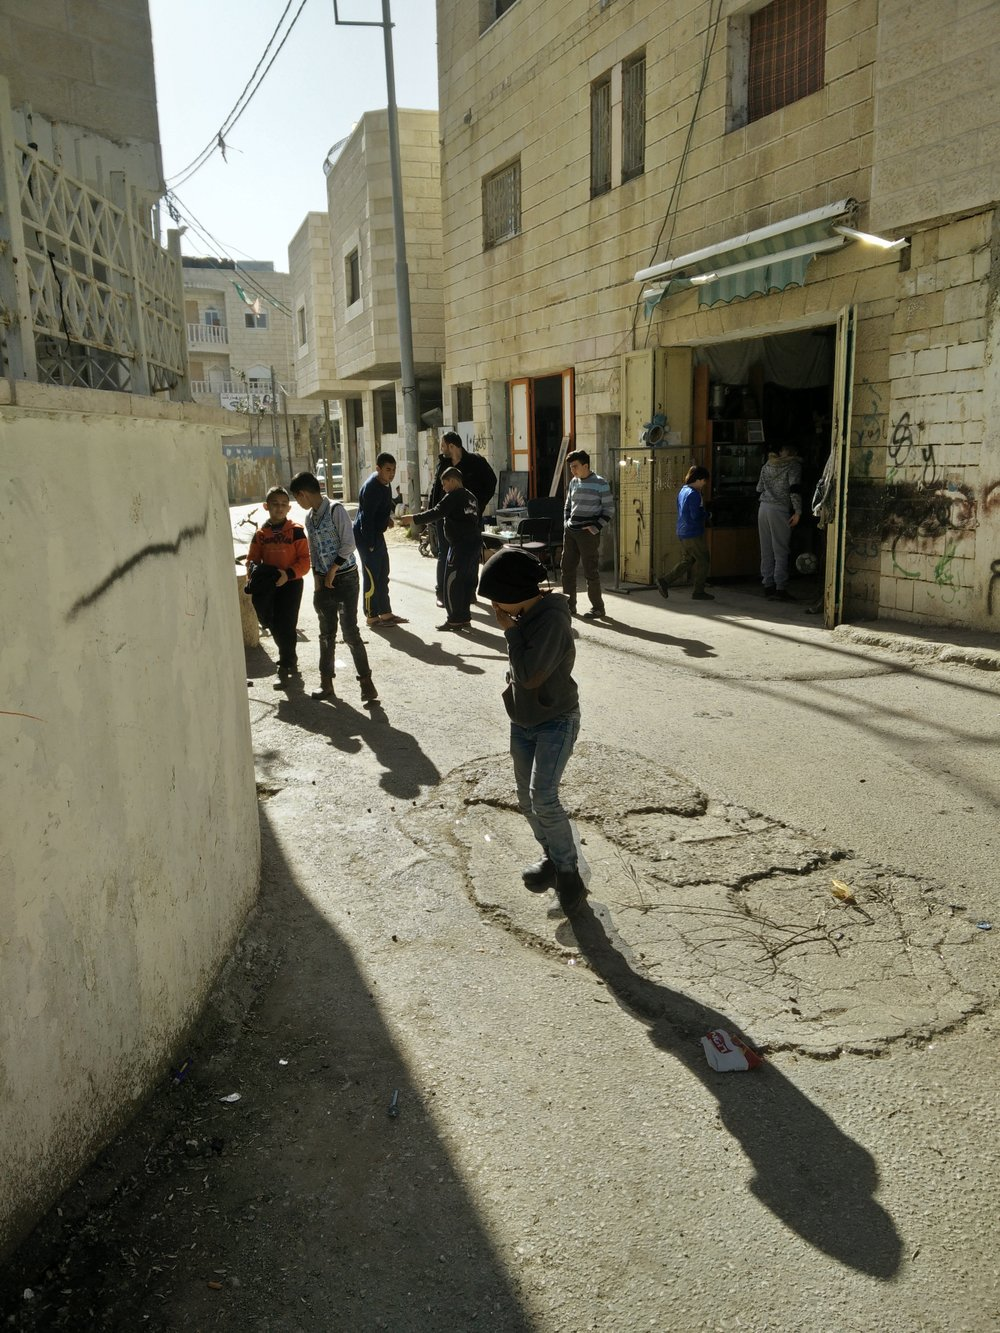 Children playing in the streets. Unfortunately there are virtually no green areas in the camp.